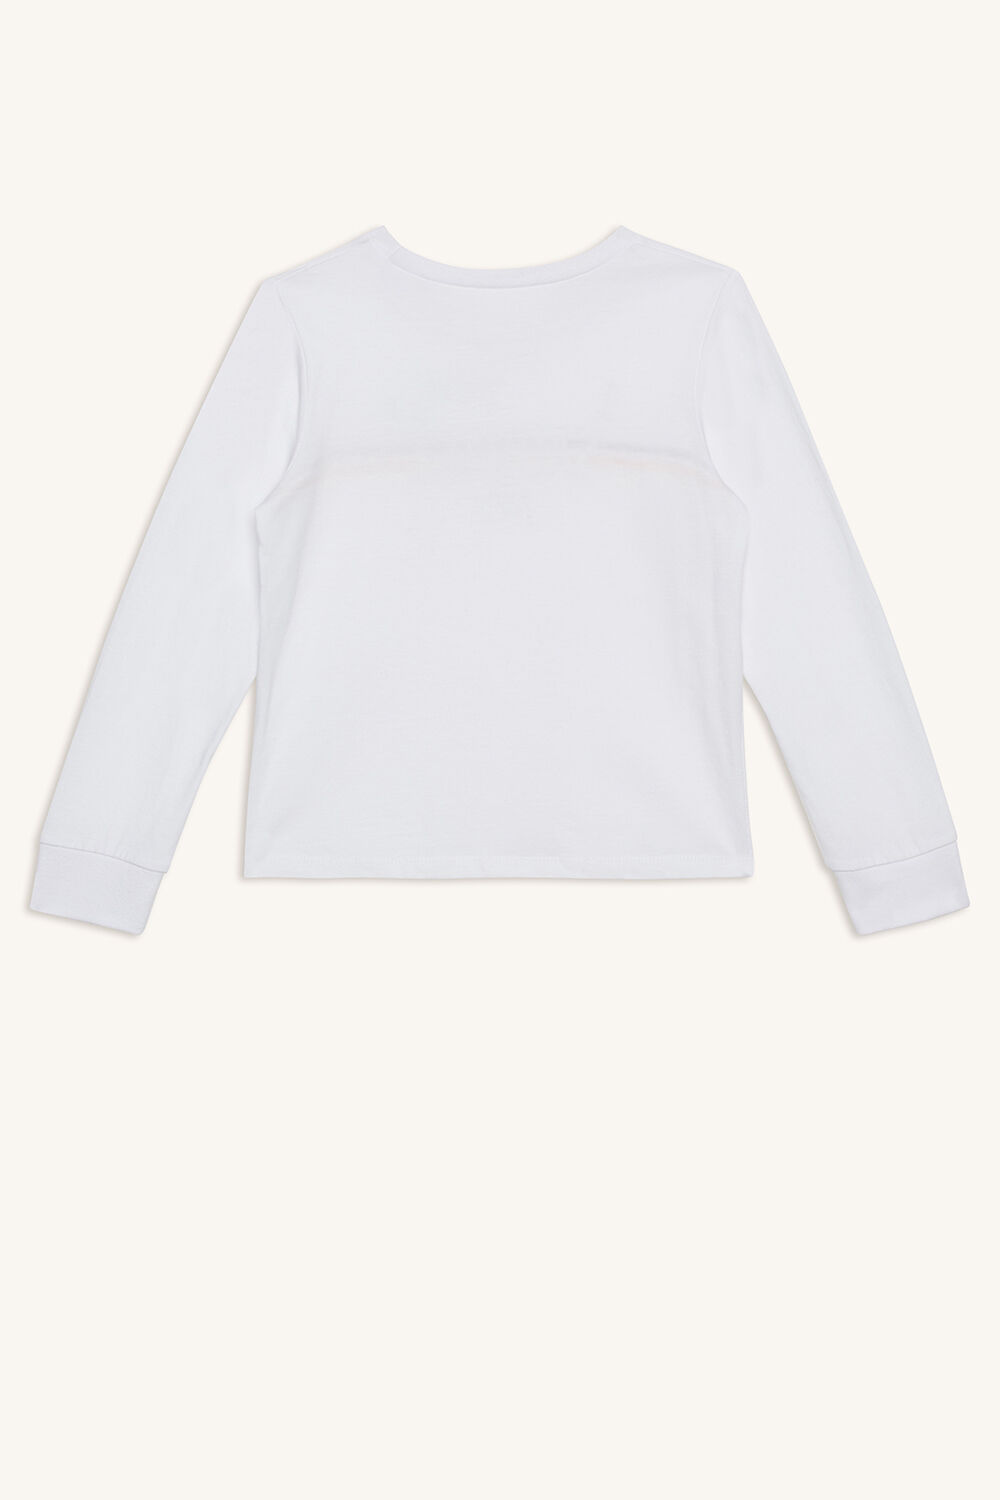 SAUVAGE LONG SLEEVE TOP in colour BRIGHT WHITE